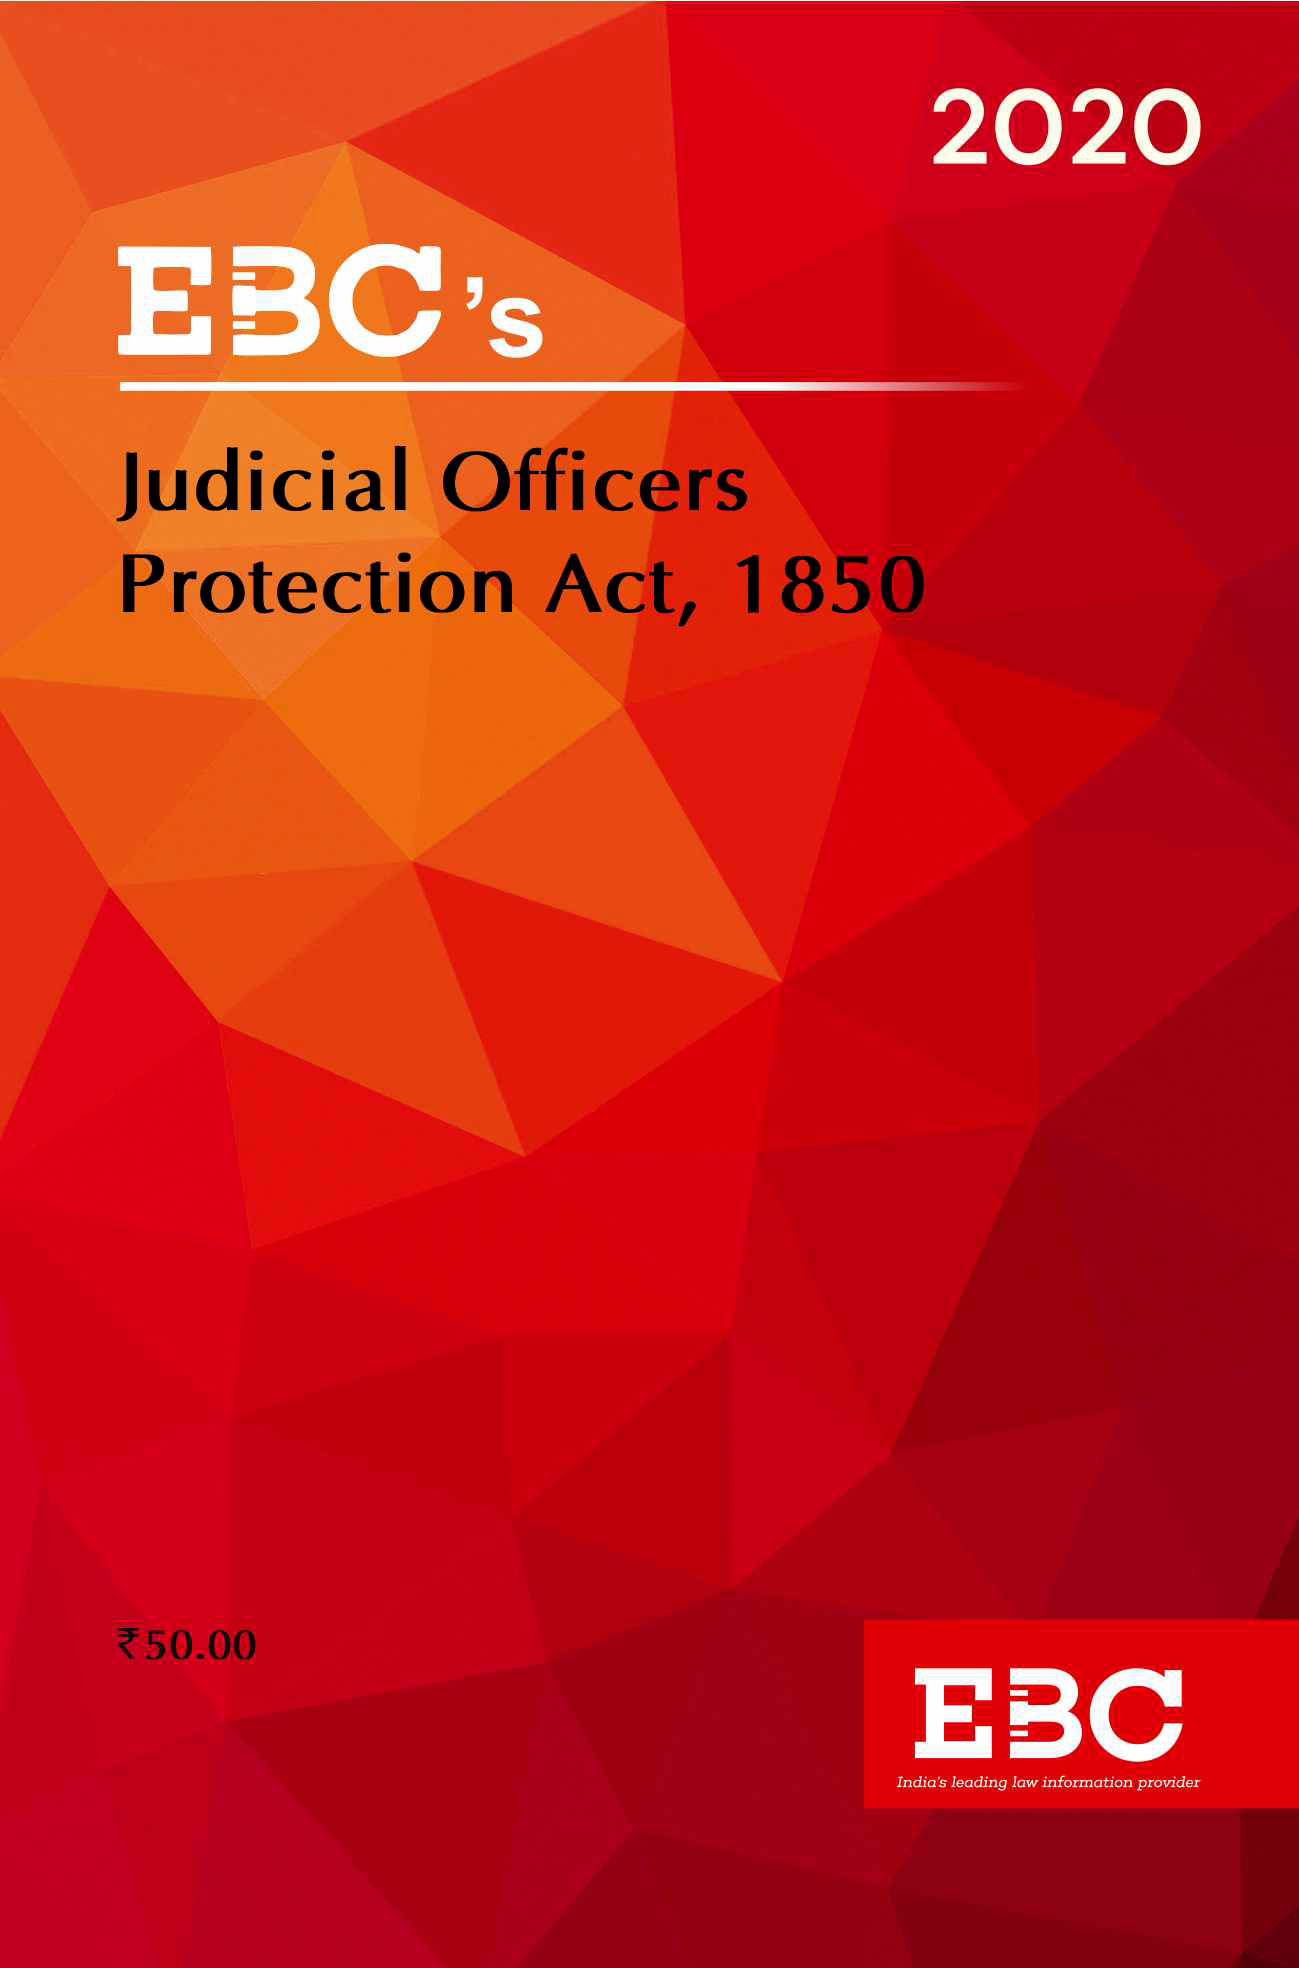 Judicial Officers Protection Act, 1850